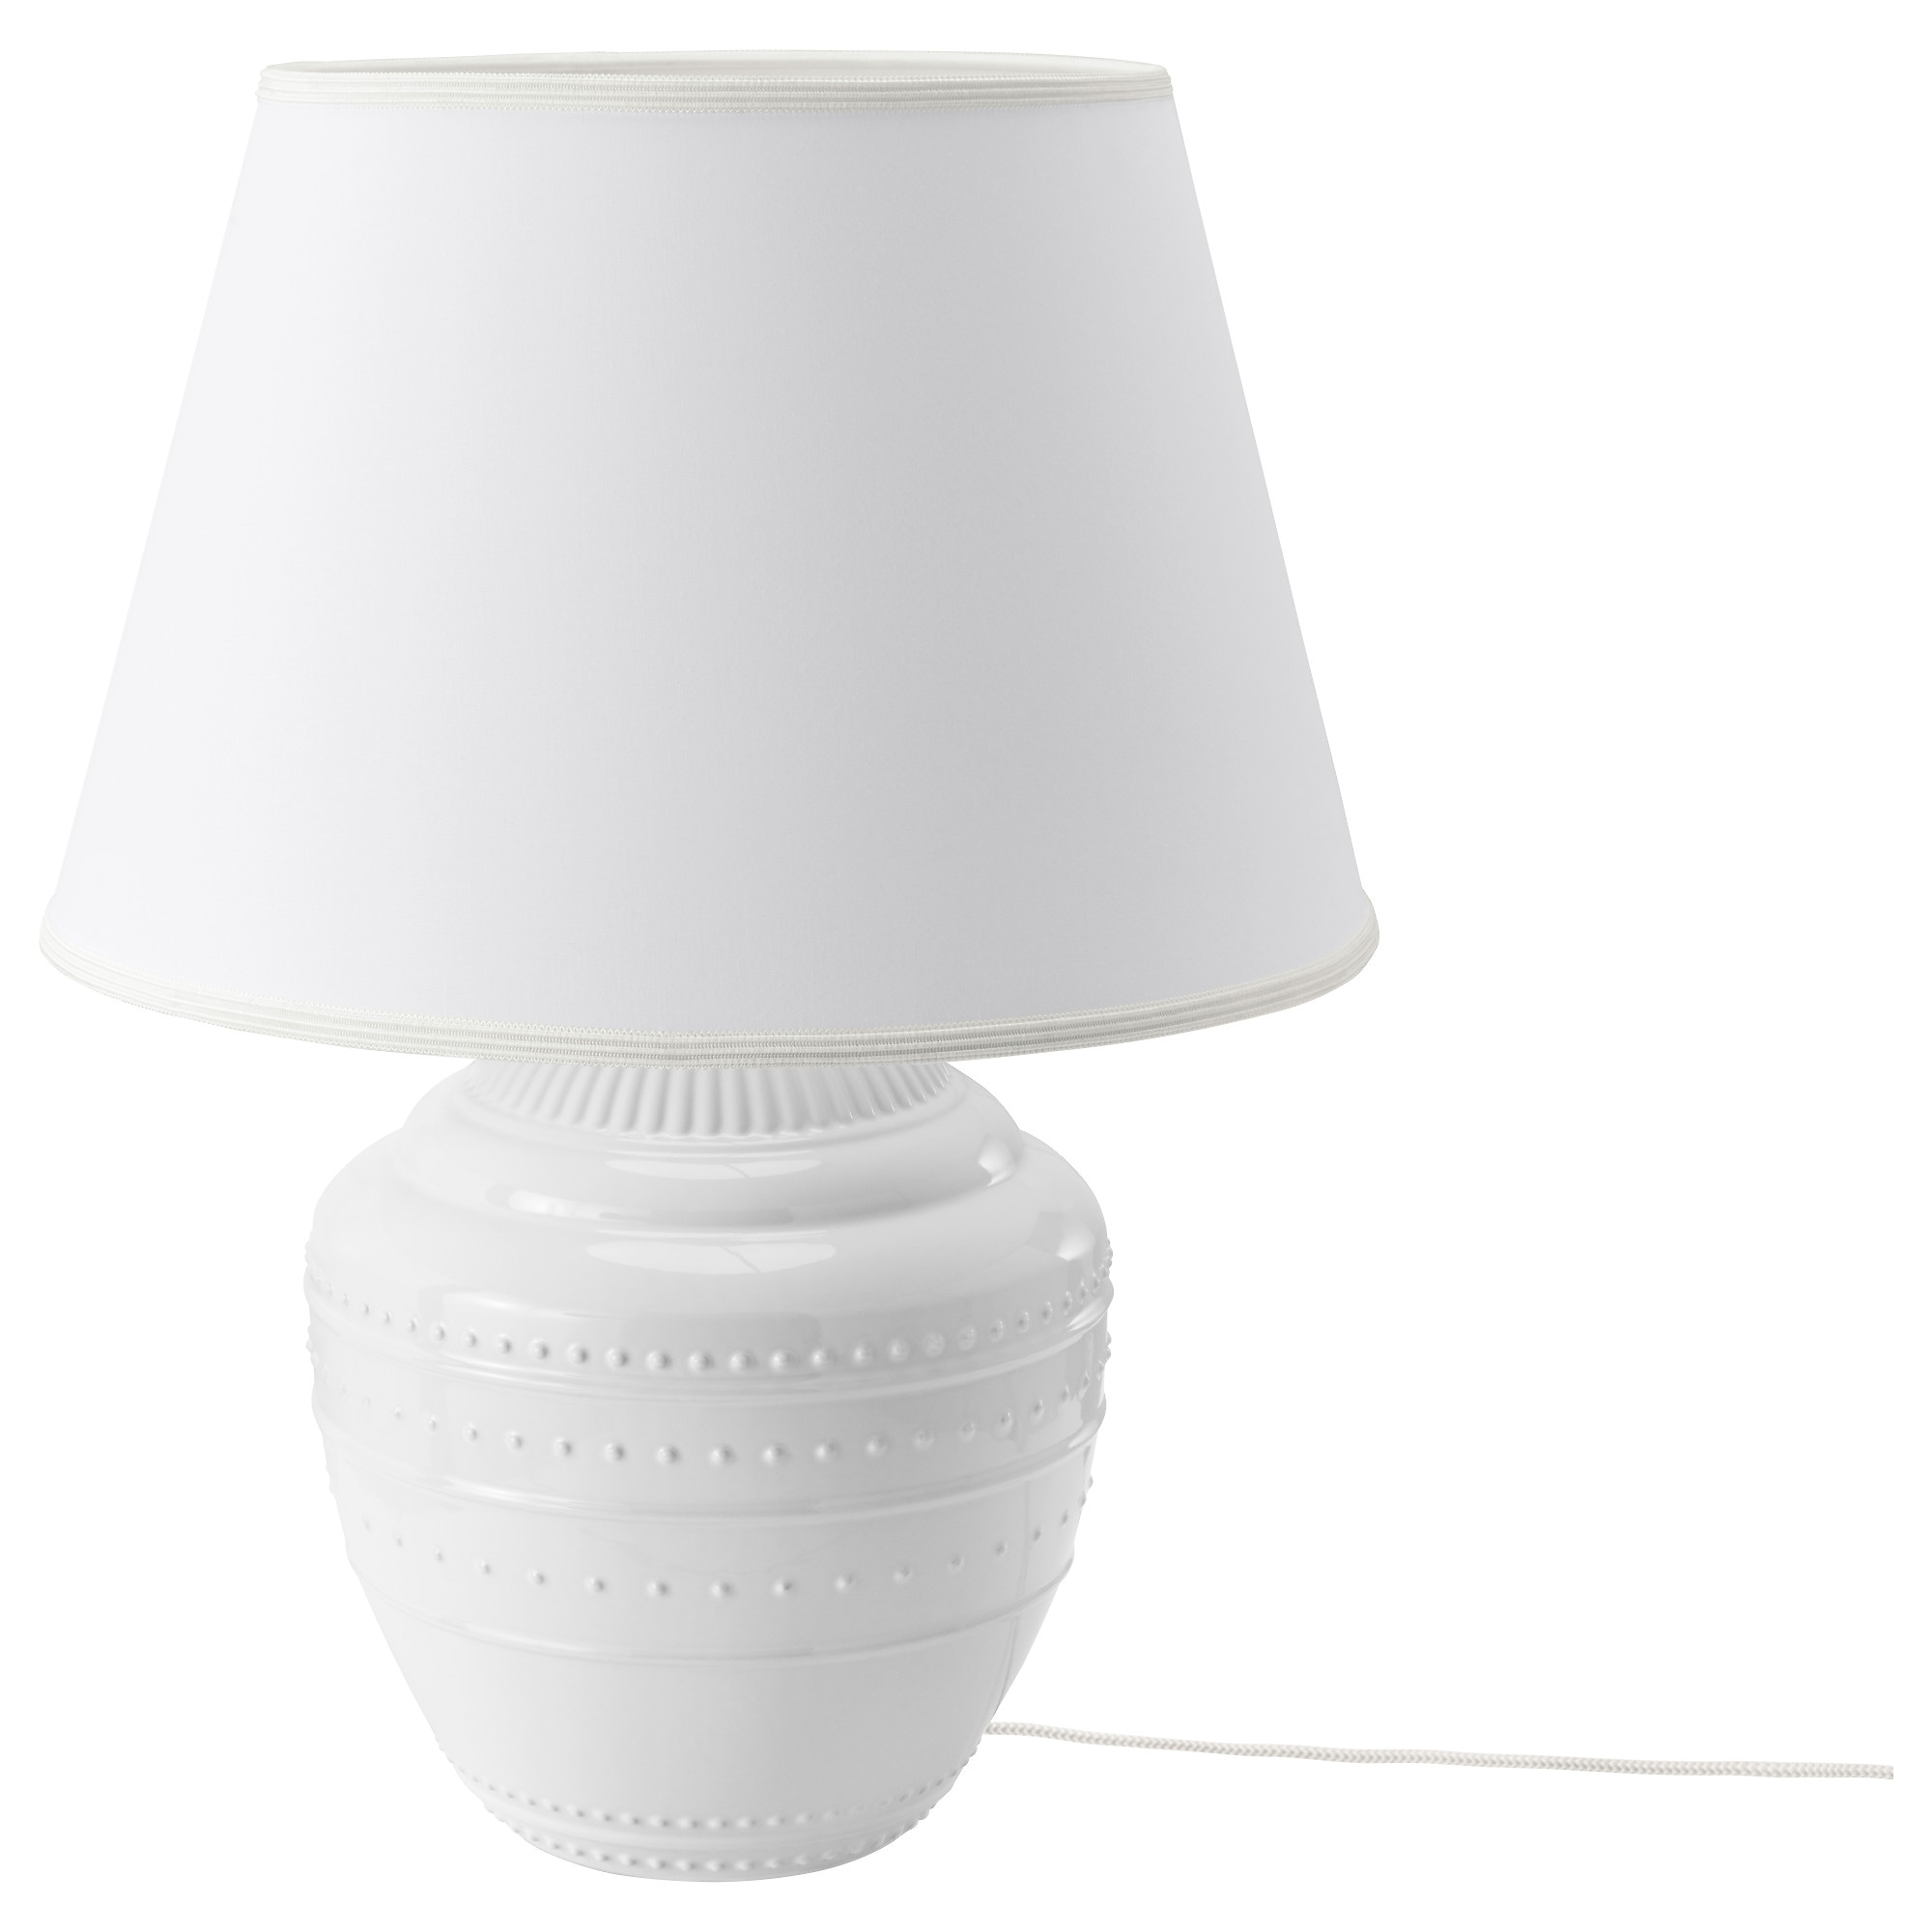 Rickarum table lamp ikea inter ikea systems bv 1999 2017 privacy policy geotapseo Images